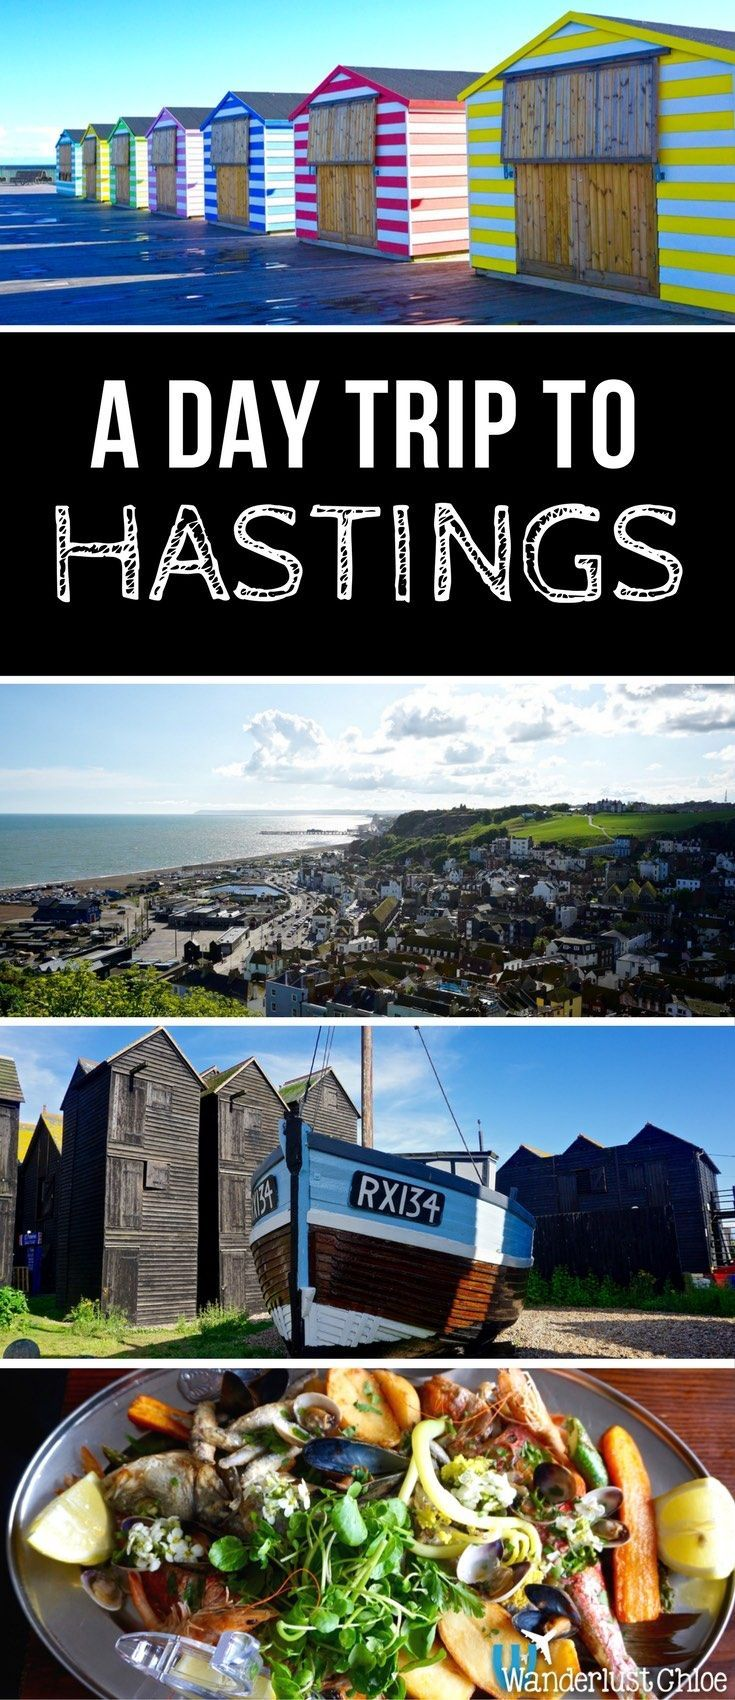 A Day Trip To Hastings, South East England. Candy coloured beach huts, a funicular railway, top seafood, an old high street lined with independent stores, and hidden gems galore – Hastings ticks every box on the seaside day trip list! https://www.wanderlustchloe.com/hastings-day-trip-things-to-do/